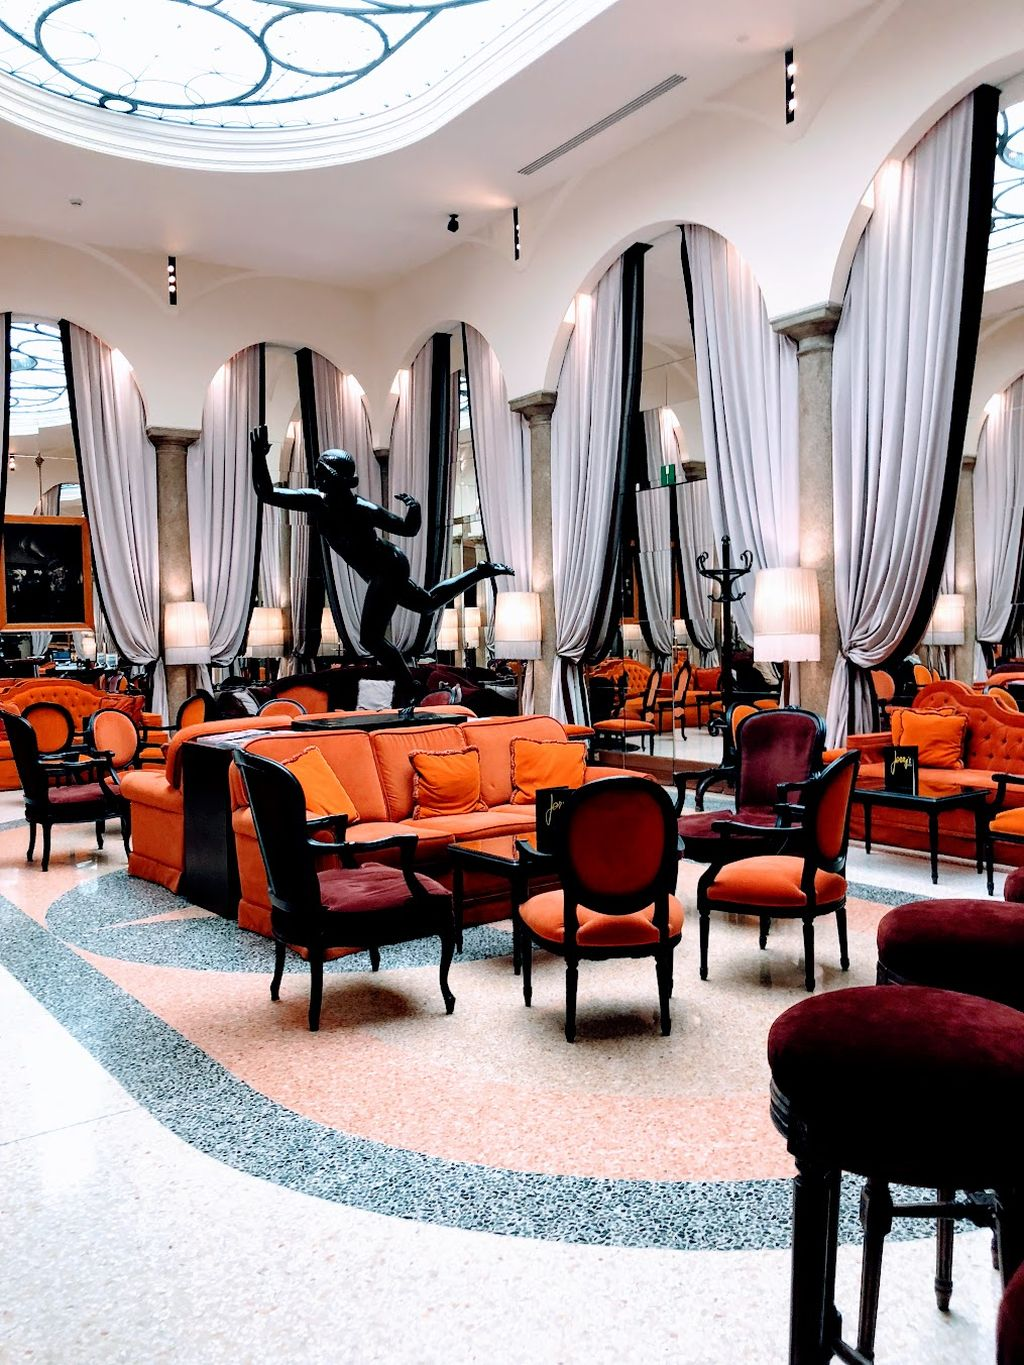 Staying At The Historic Grand Hotel Et De Milan Milan The Hotel Trotter